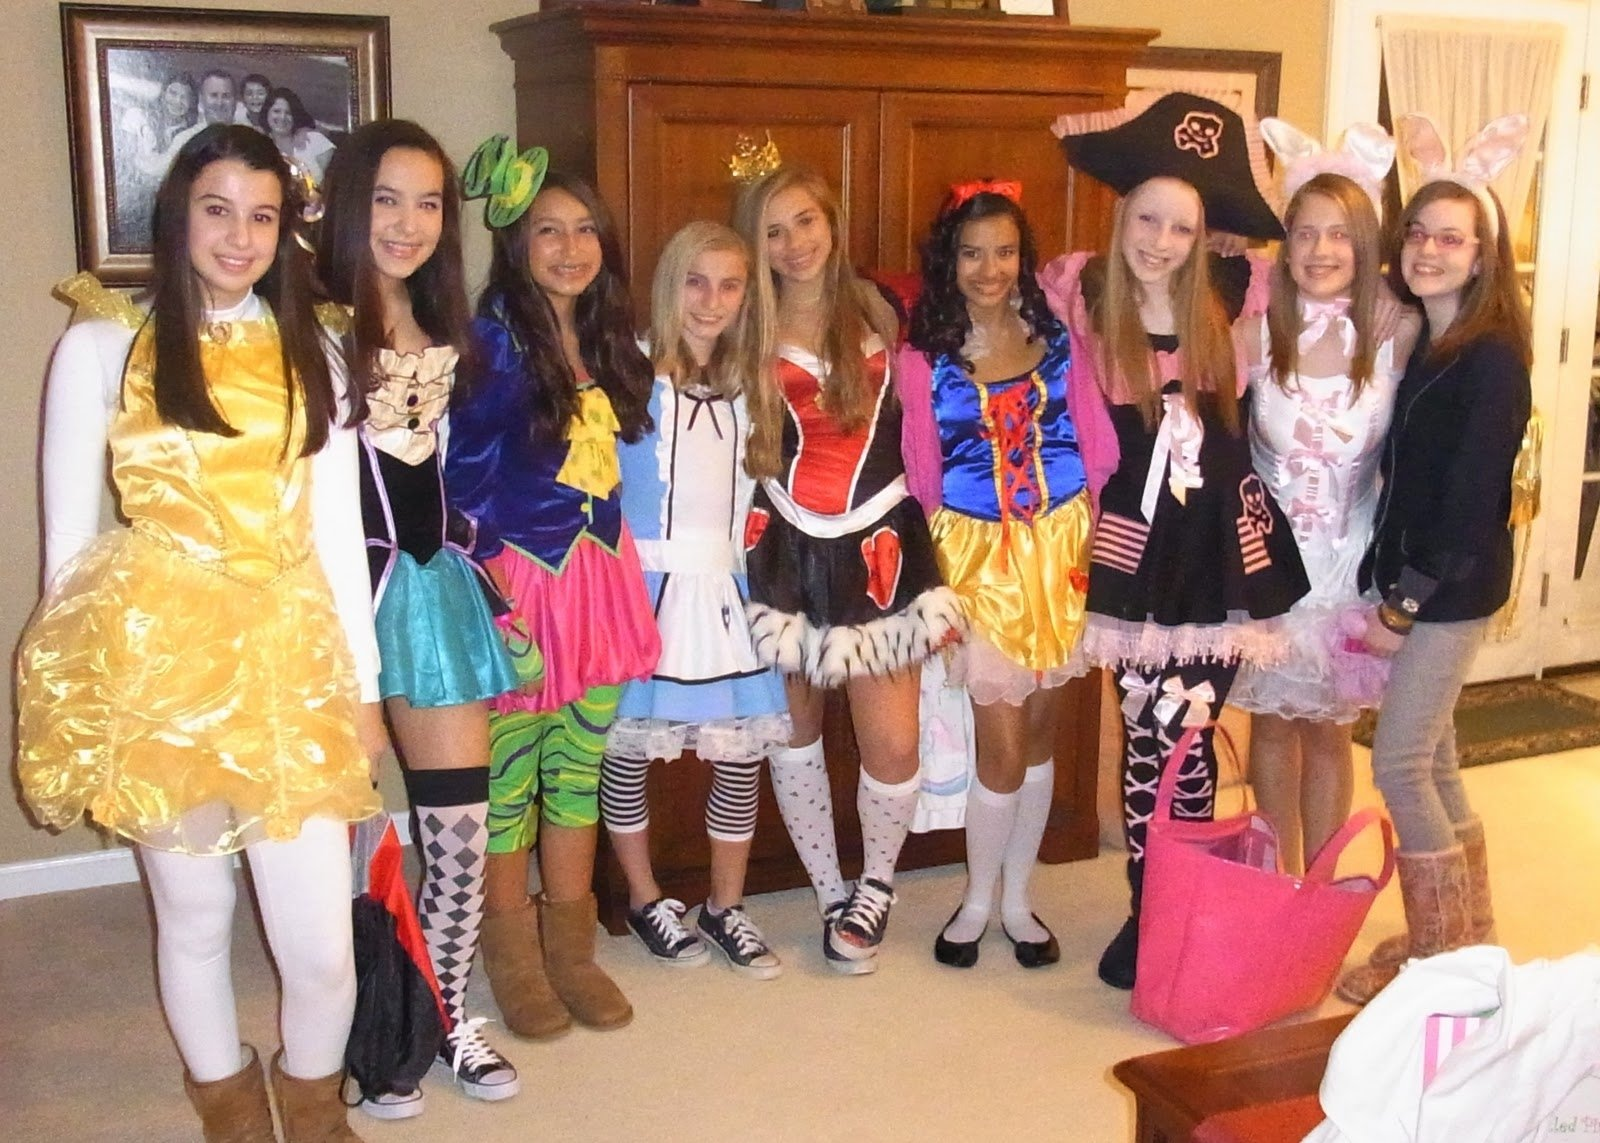 10 Trendy Girl Group Halloween Costume Ideas pinflankkks on cool halloween outfits pinterest 4 2020